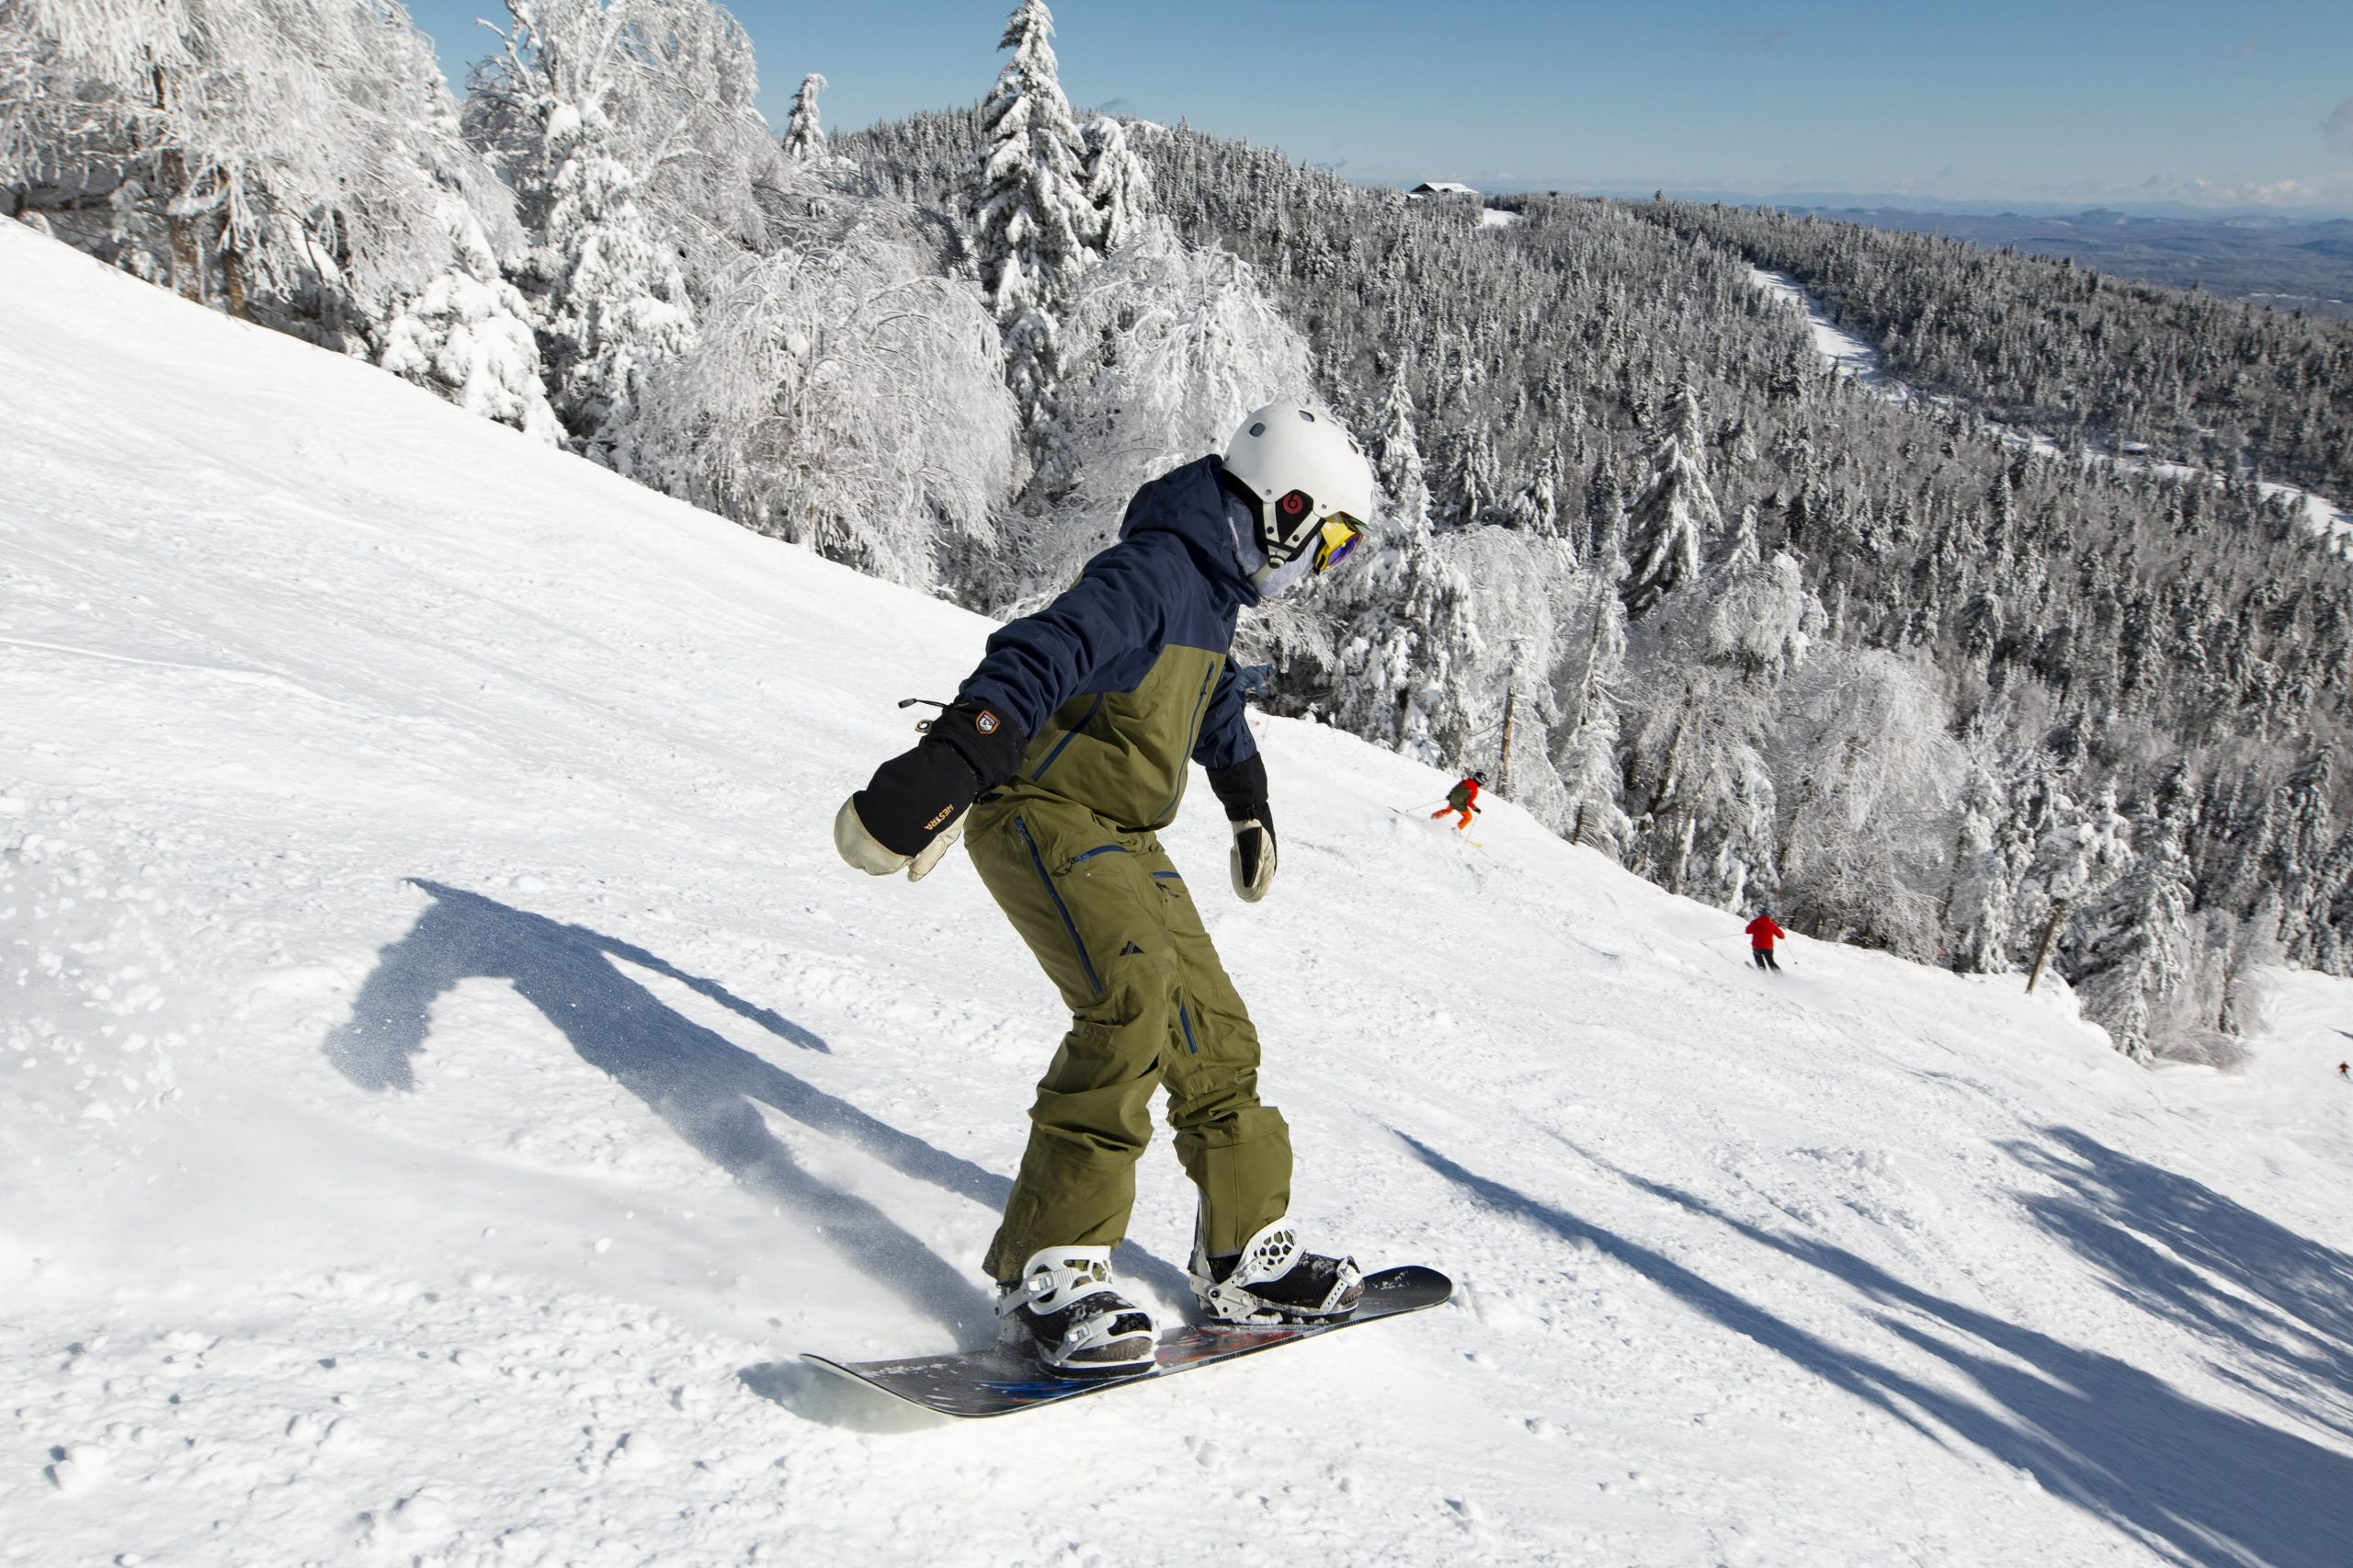 Snowboarder on a steep trail with a scenic view